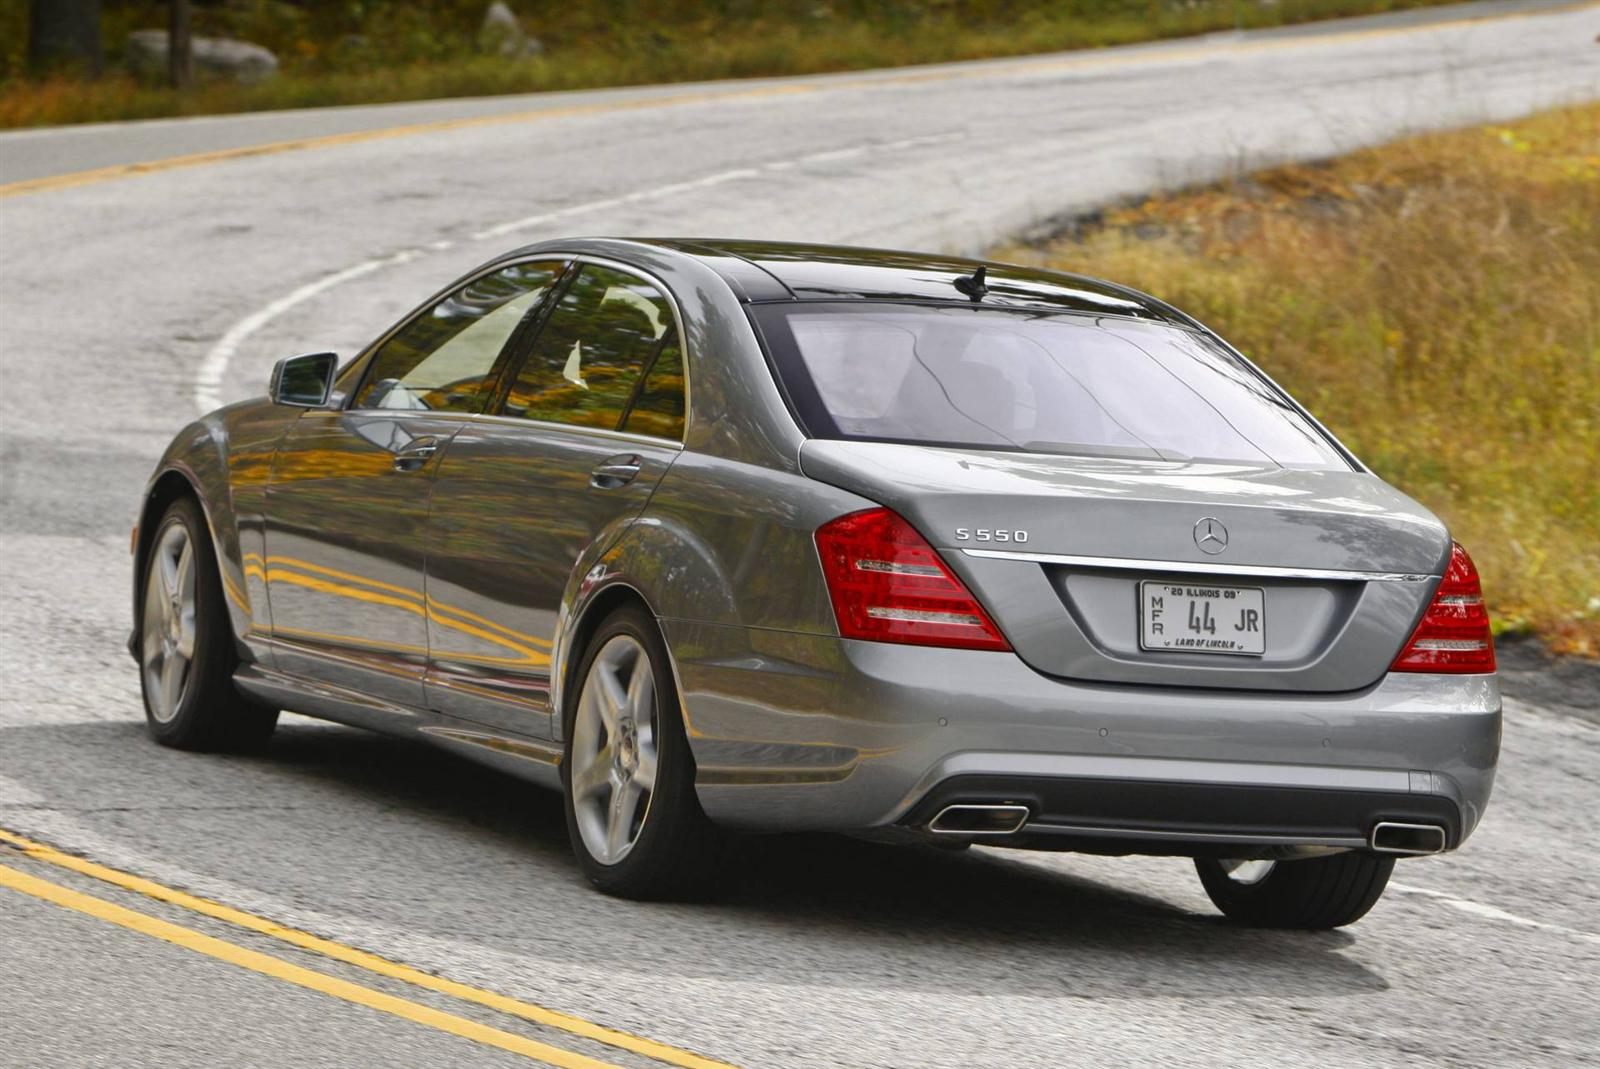 Image gallery 2013 mercedes benz s500 for 2013 mercedes benz s class s550